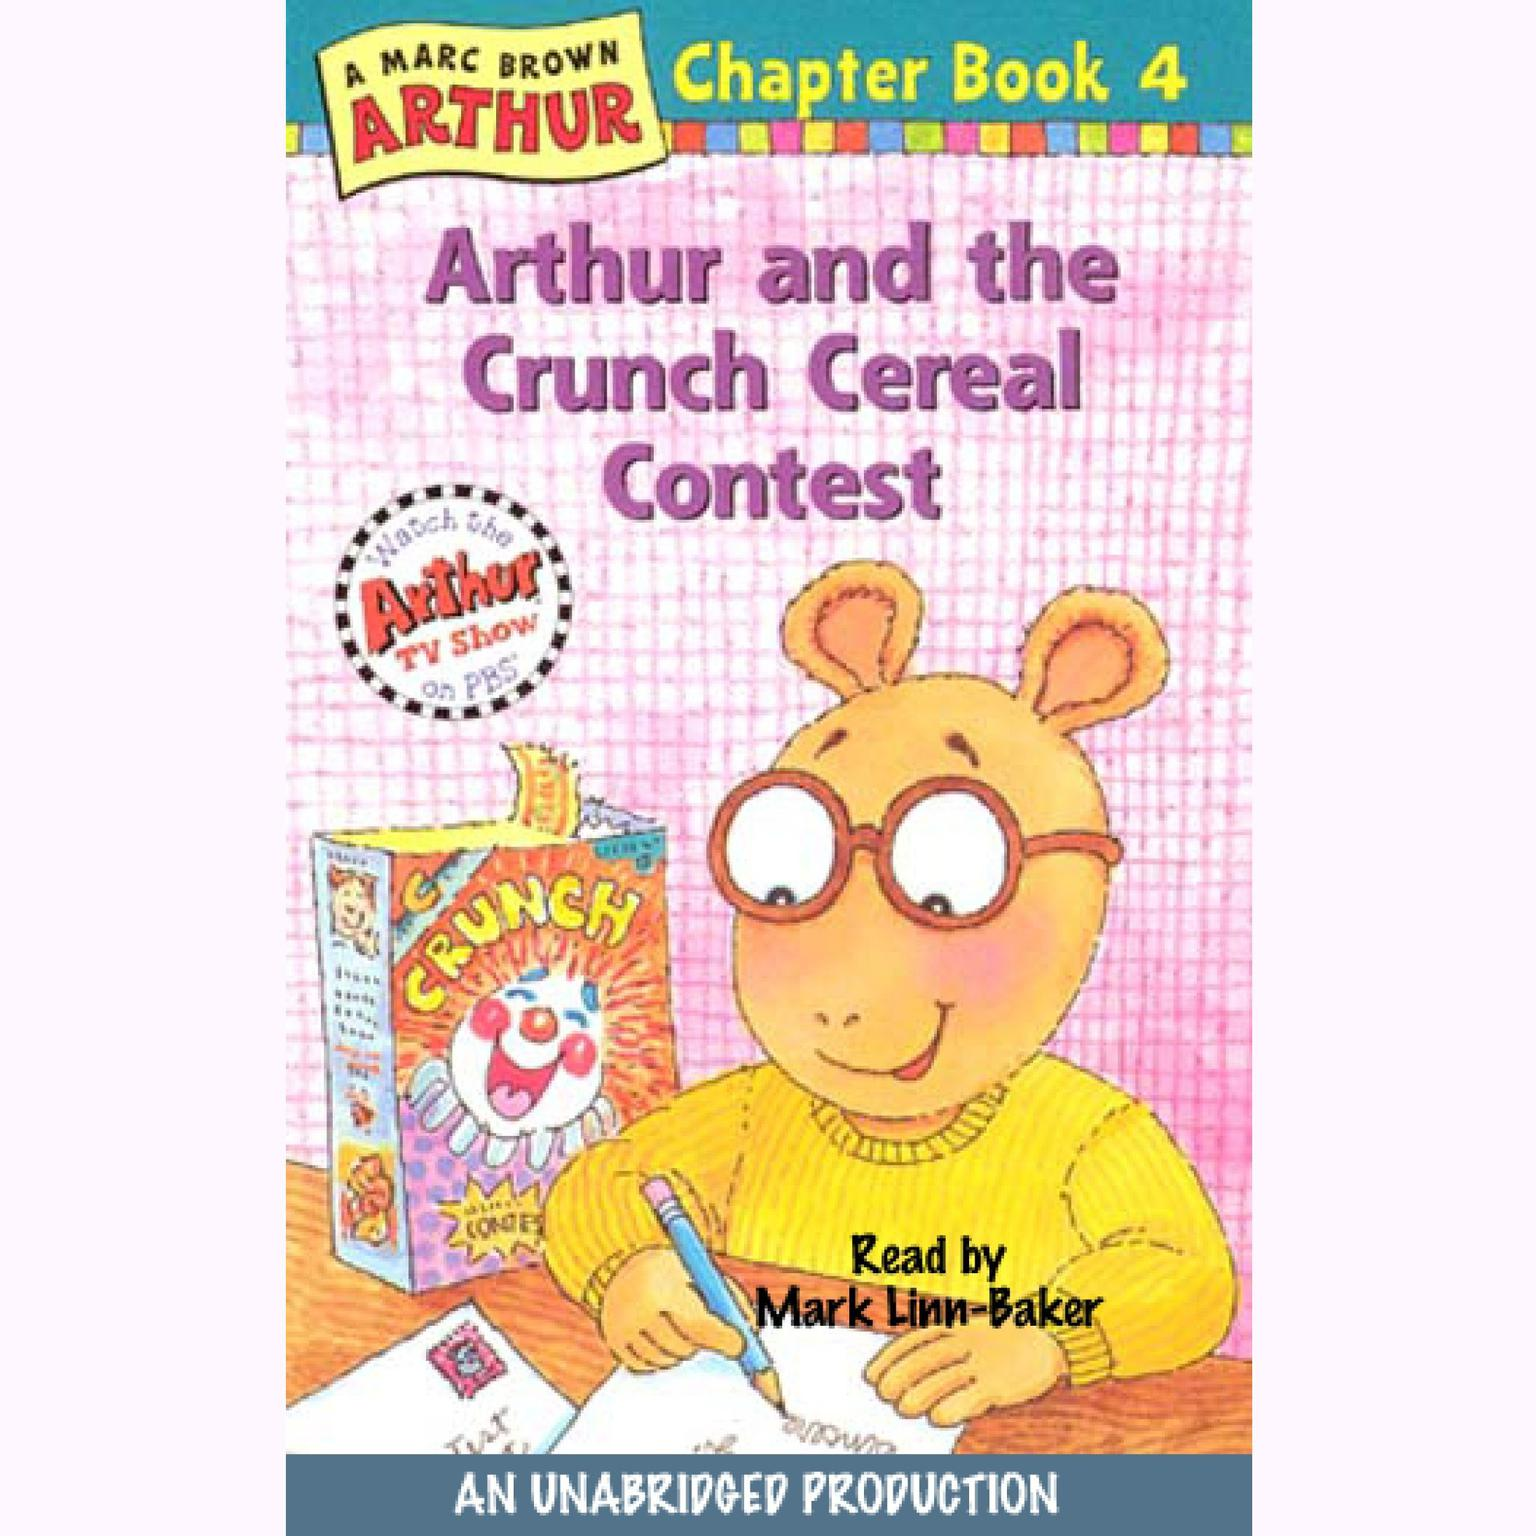 Printable Arthur and the Crunch Cereal Contest: A Marc Brown Arthur Chapter Book #4 Audiobook Cover Art